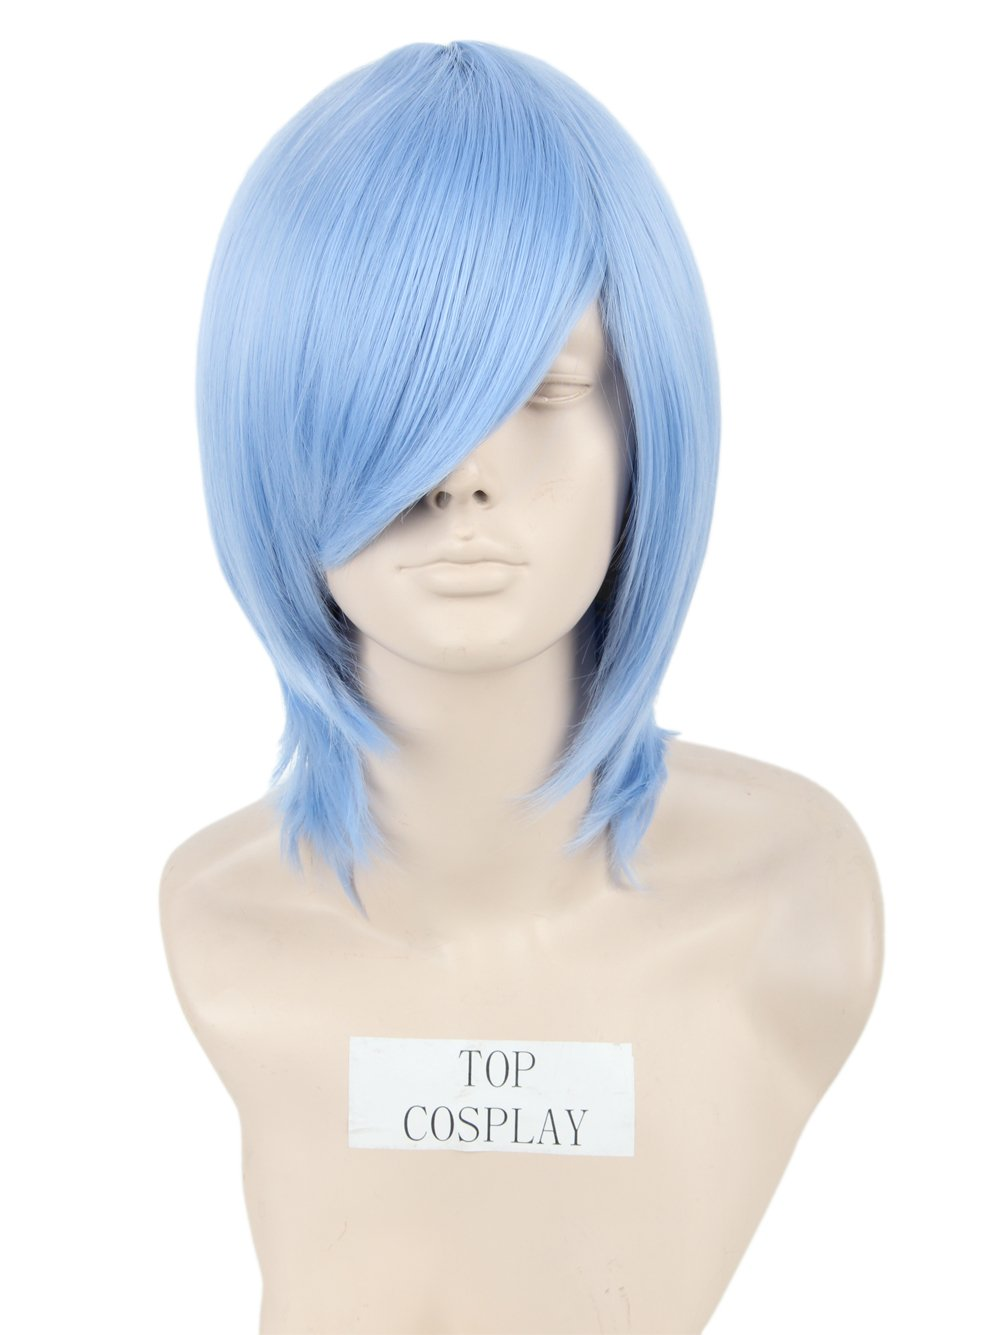 Topcosplay Short Straight Anime Cosplay Wigs Natural Halloween Costume Party Daily Hair Light Blue by Topcosplay (Image #5)